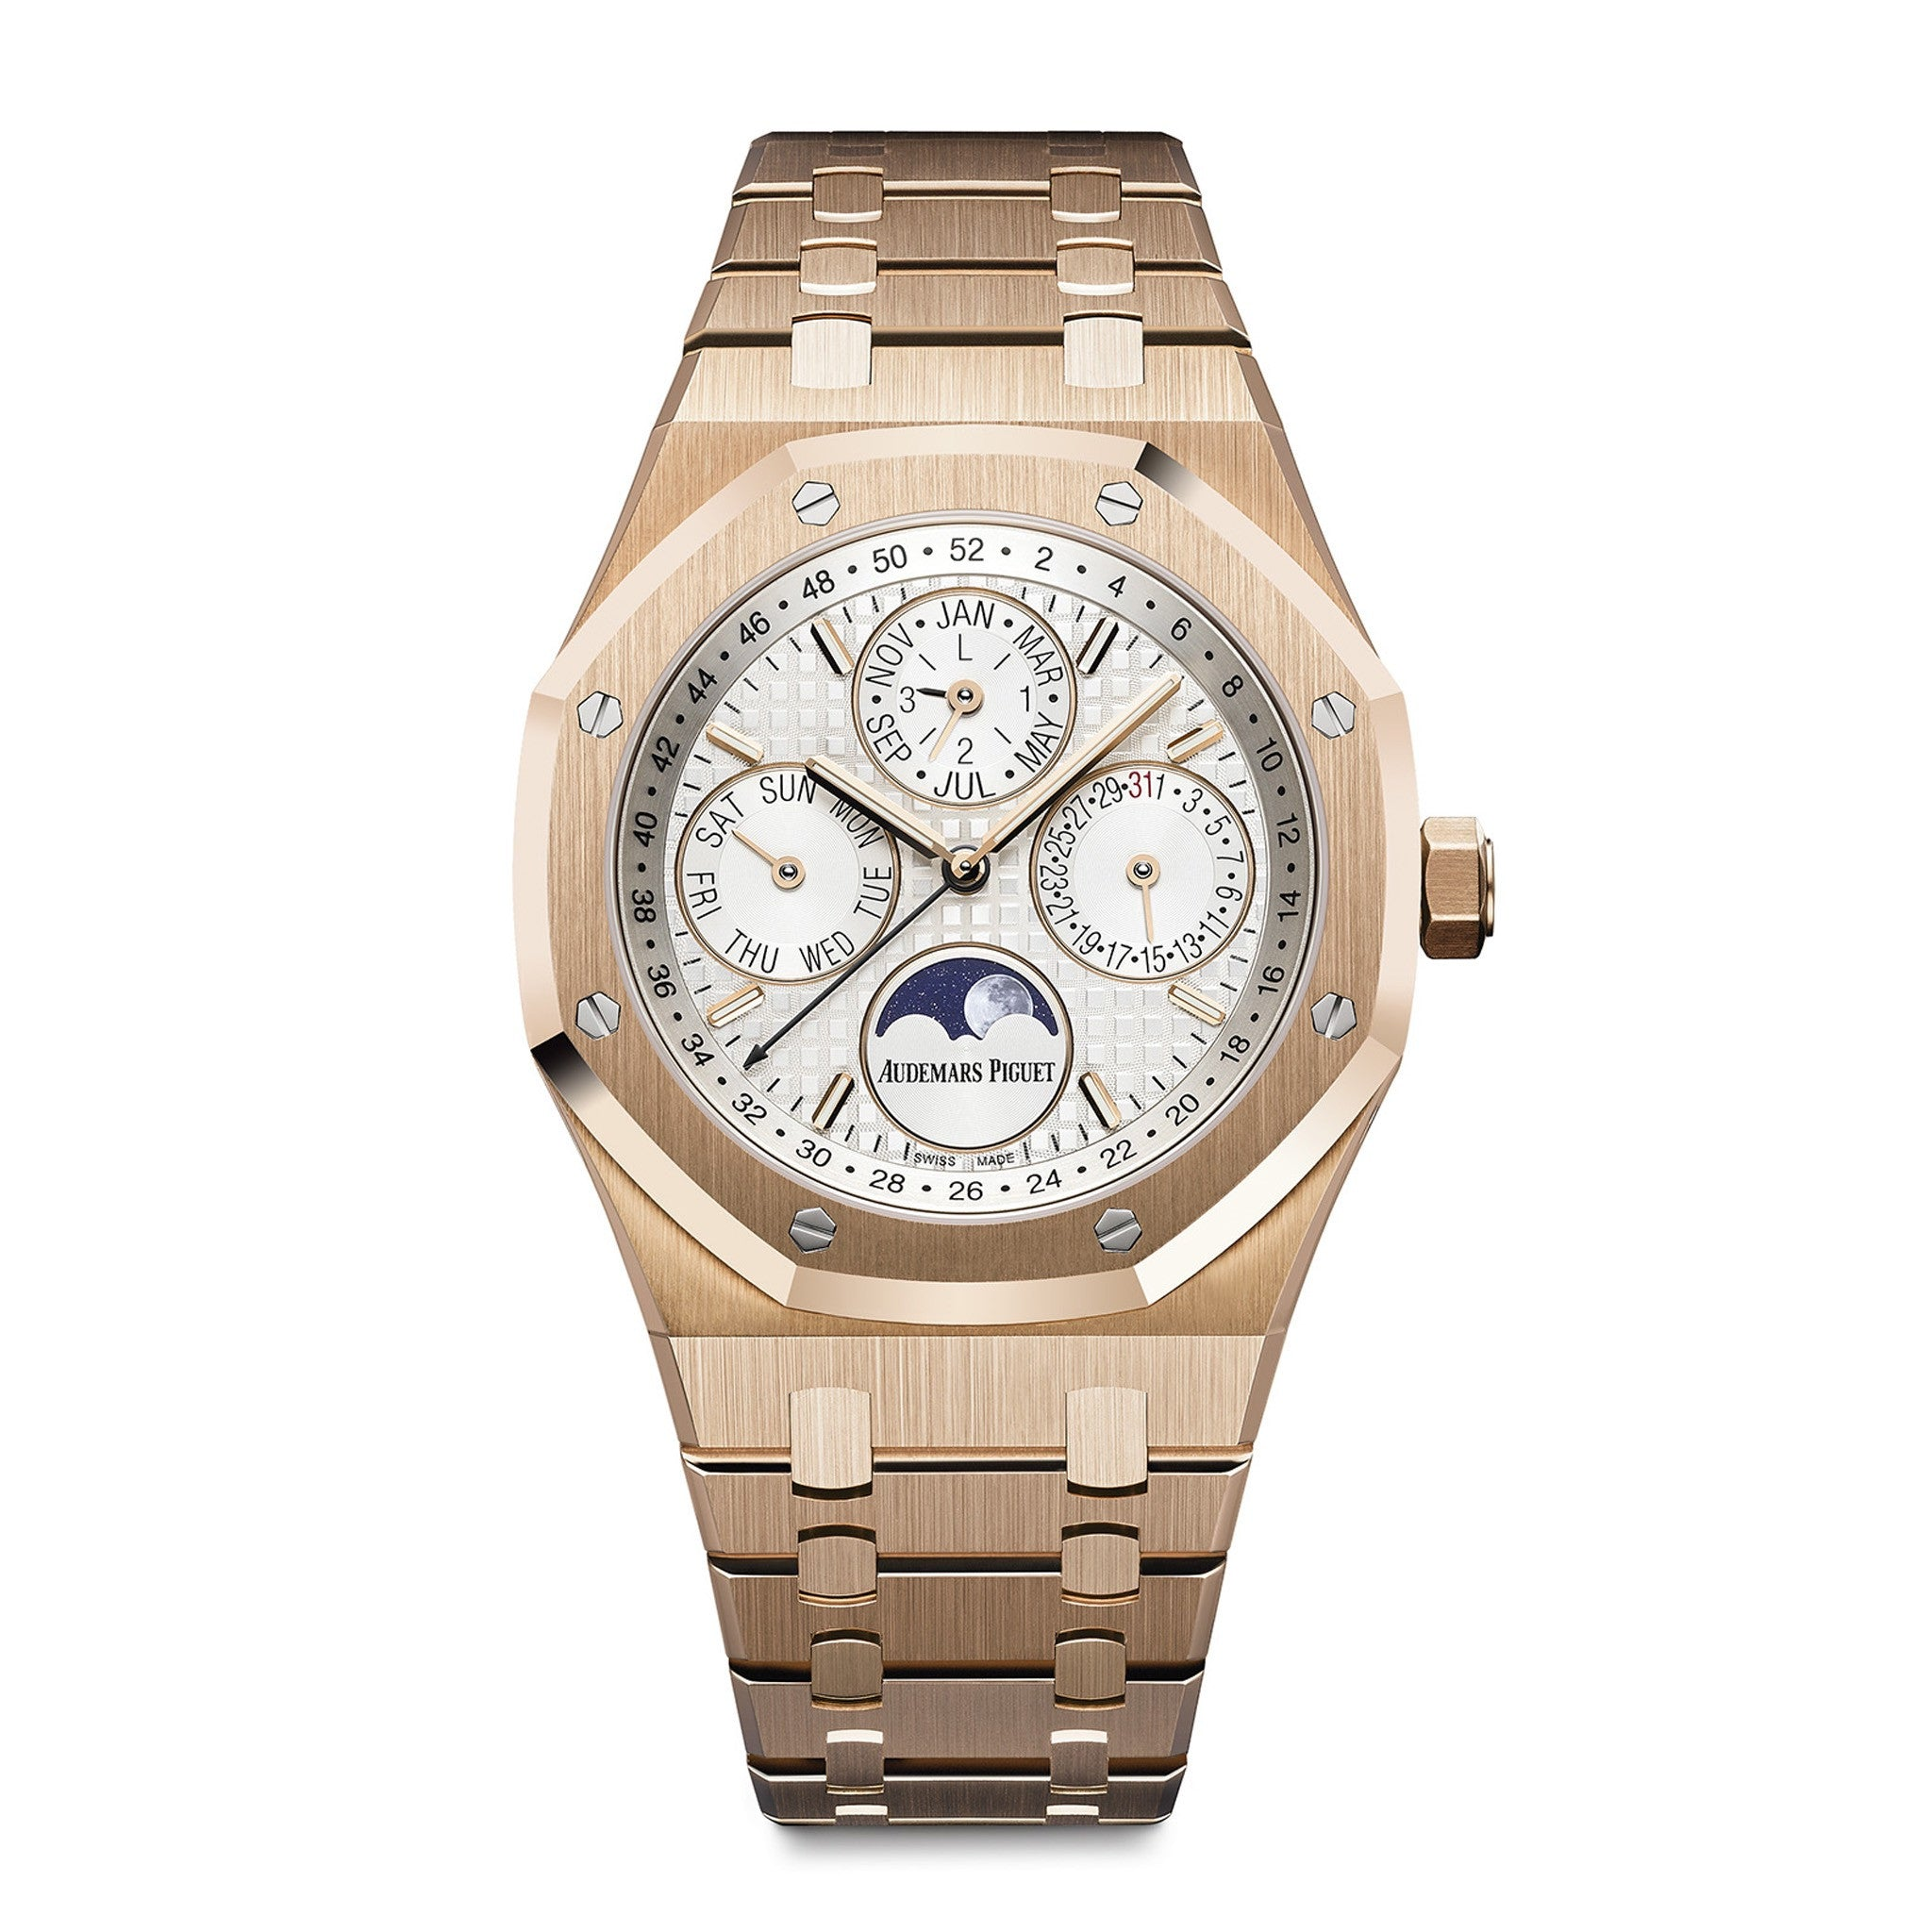 Royal Oak Perpetual Calendar 26574OR.OO.1220OR.01 - Audemars Piguet